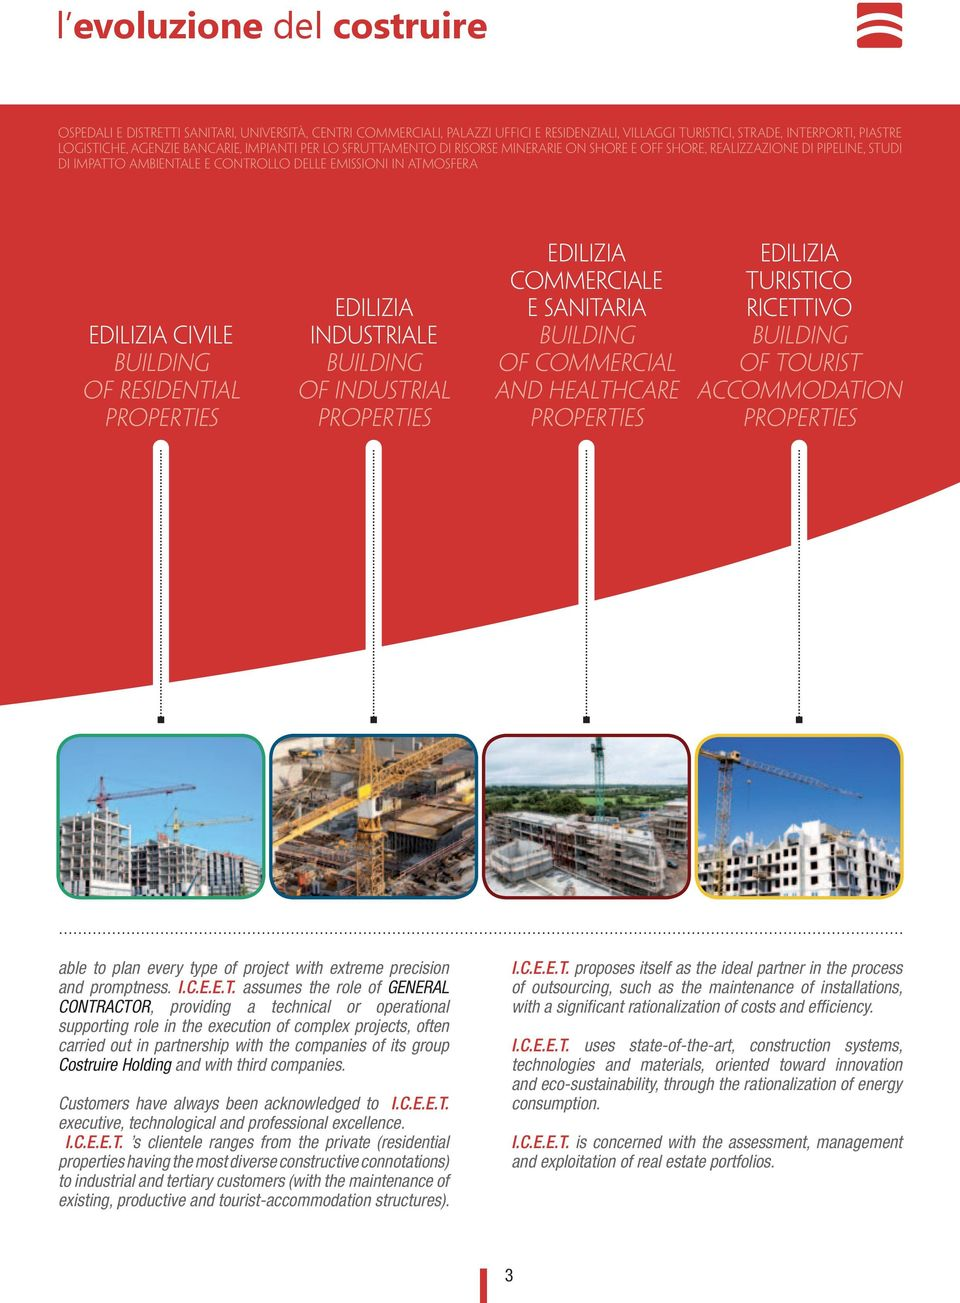 RESIDENTIAL PROPERTIES EDILIZIA INDUSTRIALE BUILDING OF INDUSTRIAL PROPERTIES EDILIZIA COMMERCIALE E SANITARIA BUILDING OF COMMERCIAL AND HEALTHCARE PROPERTIES EDILIZIA TURISTICO RICETTIVO BUILDING